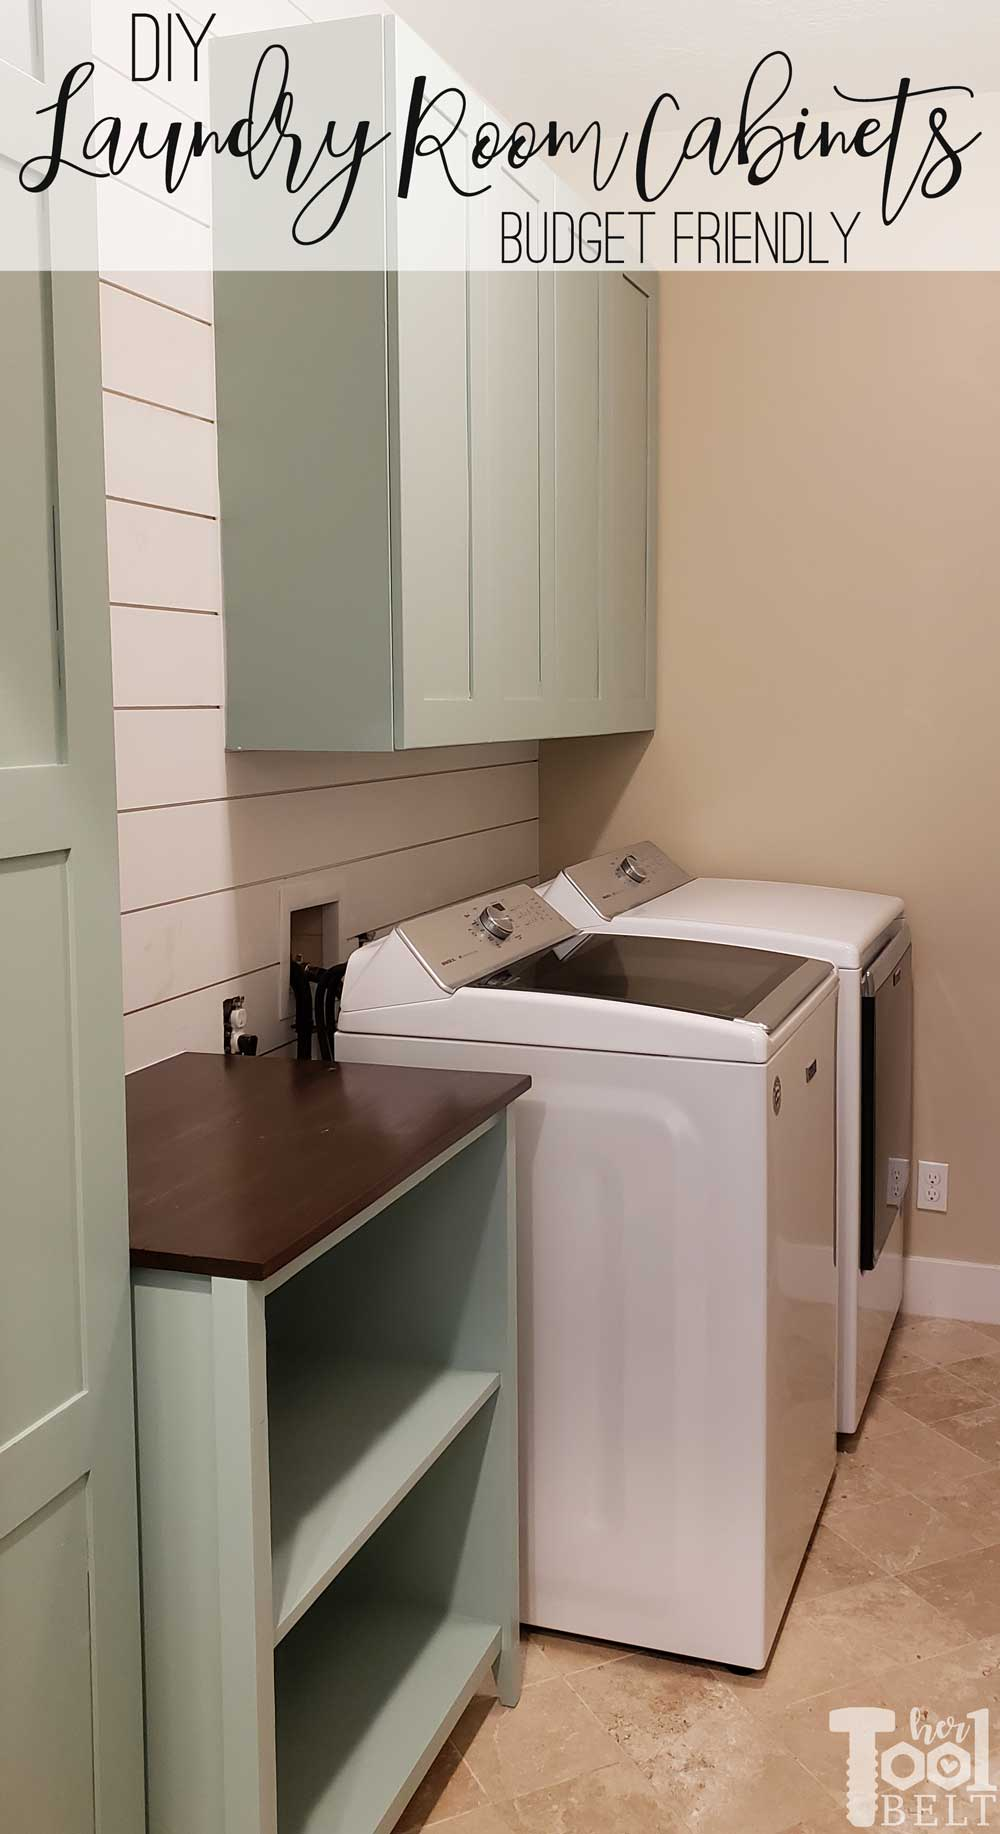 DIY Budget friendly laundry room cabinet plans   Her Tool Belt